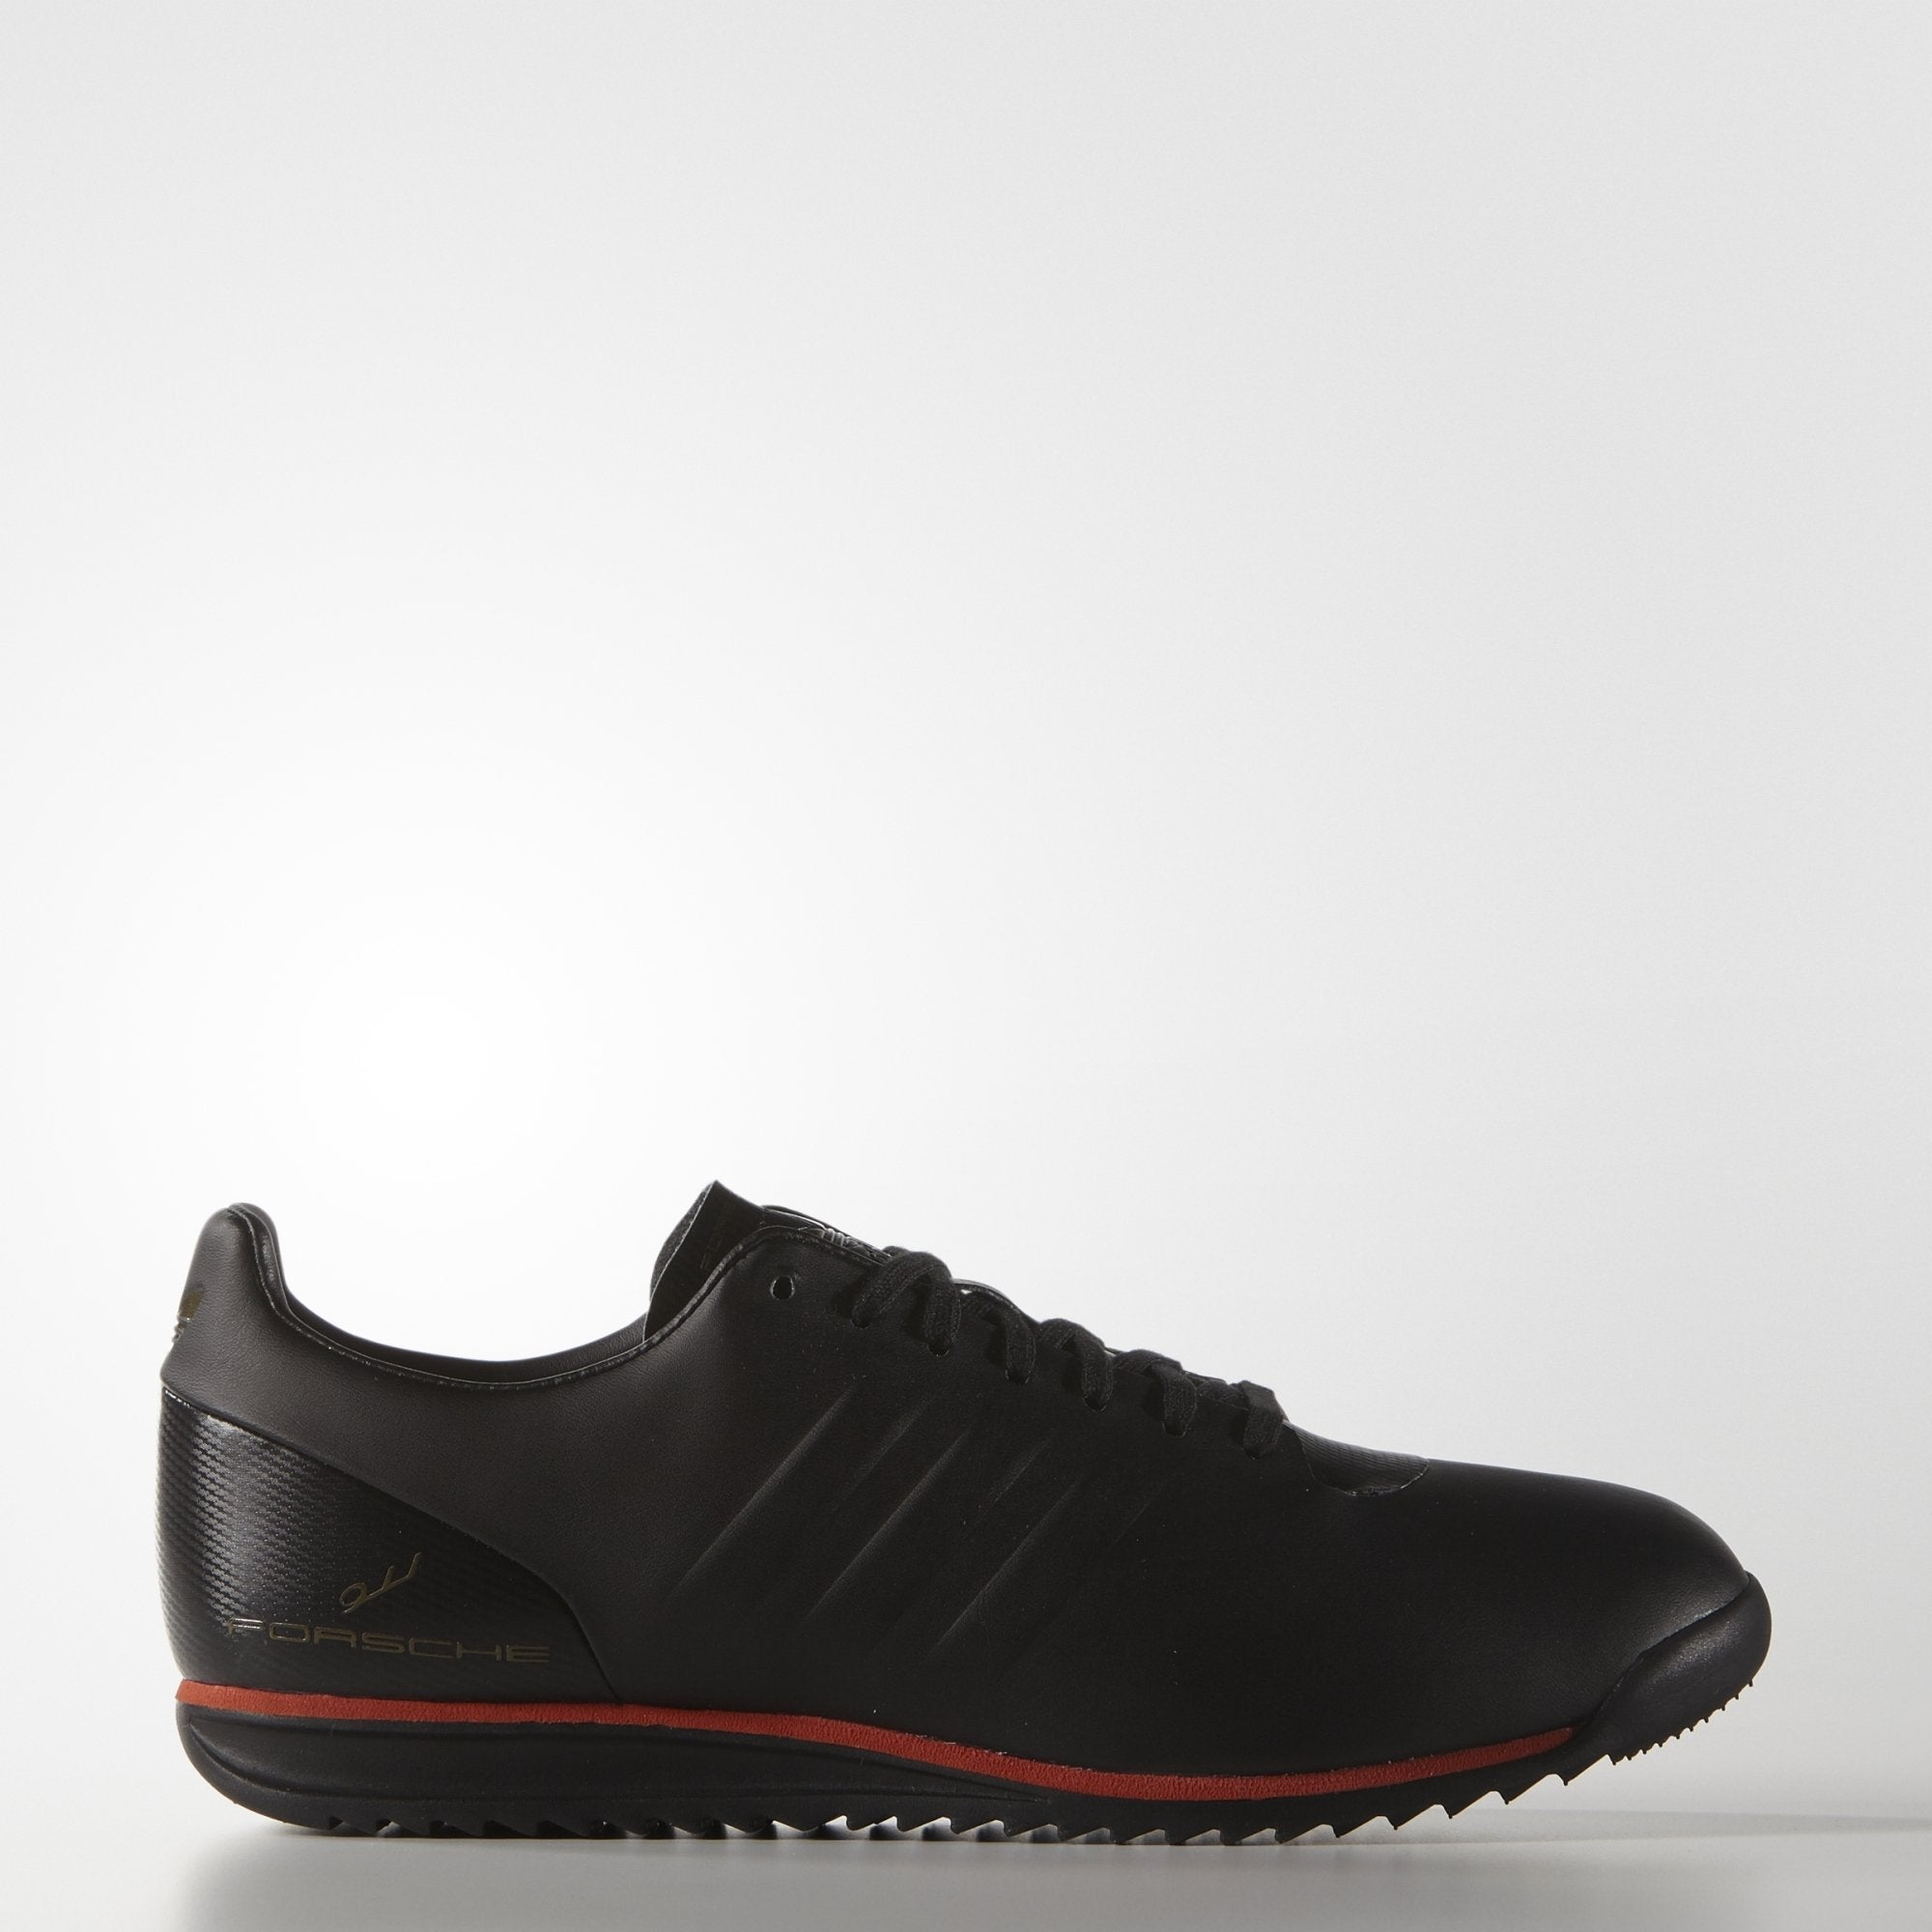 new style 41db4 28e24 france adidas porsche 911 2.0l sneakers branded feet df944 358d1